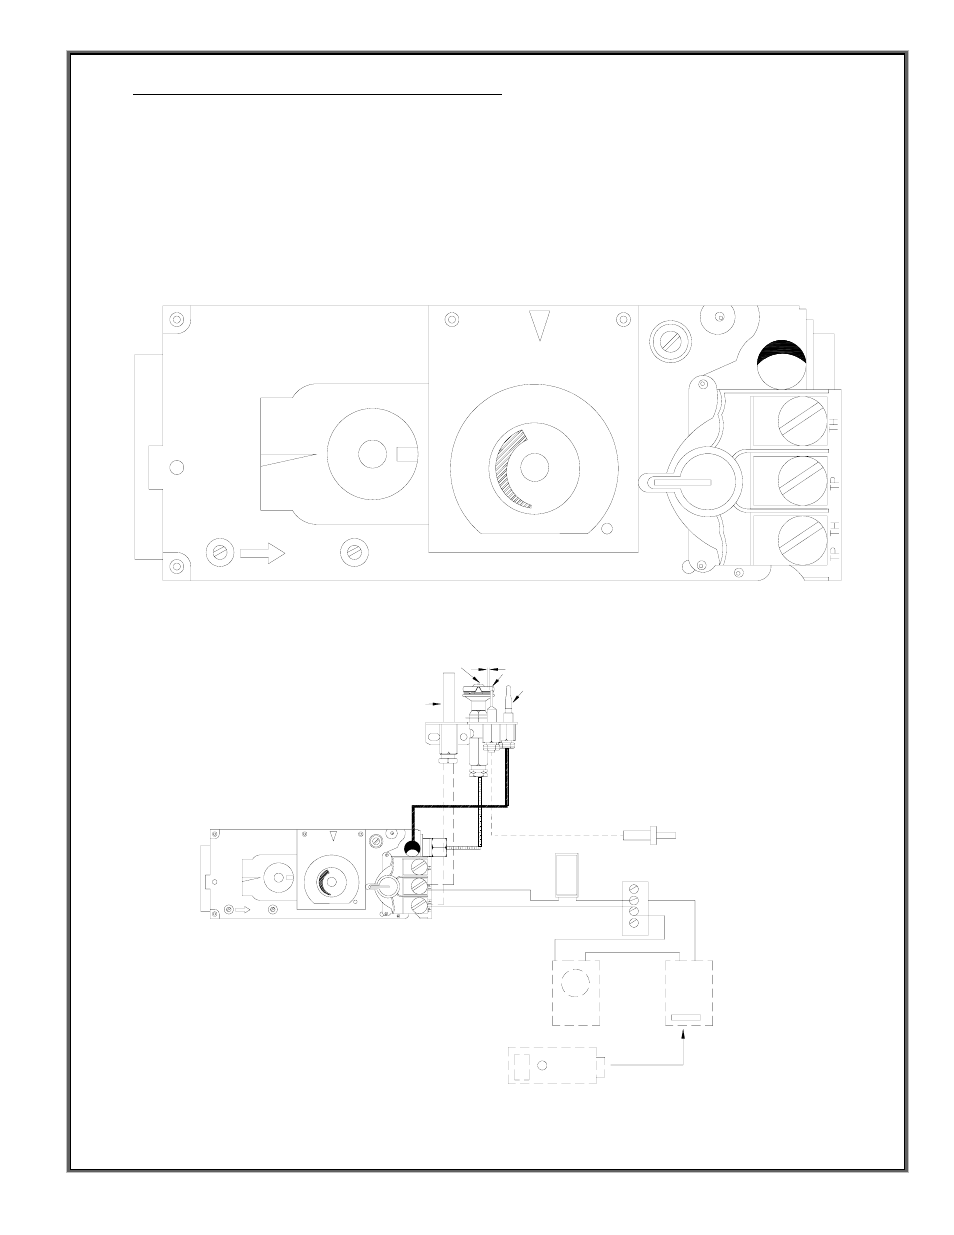 hight resolution of 6 pin trailer wiring harness diagram wiring library 6 pin trailer wiring harness